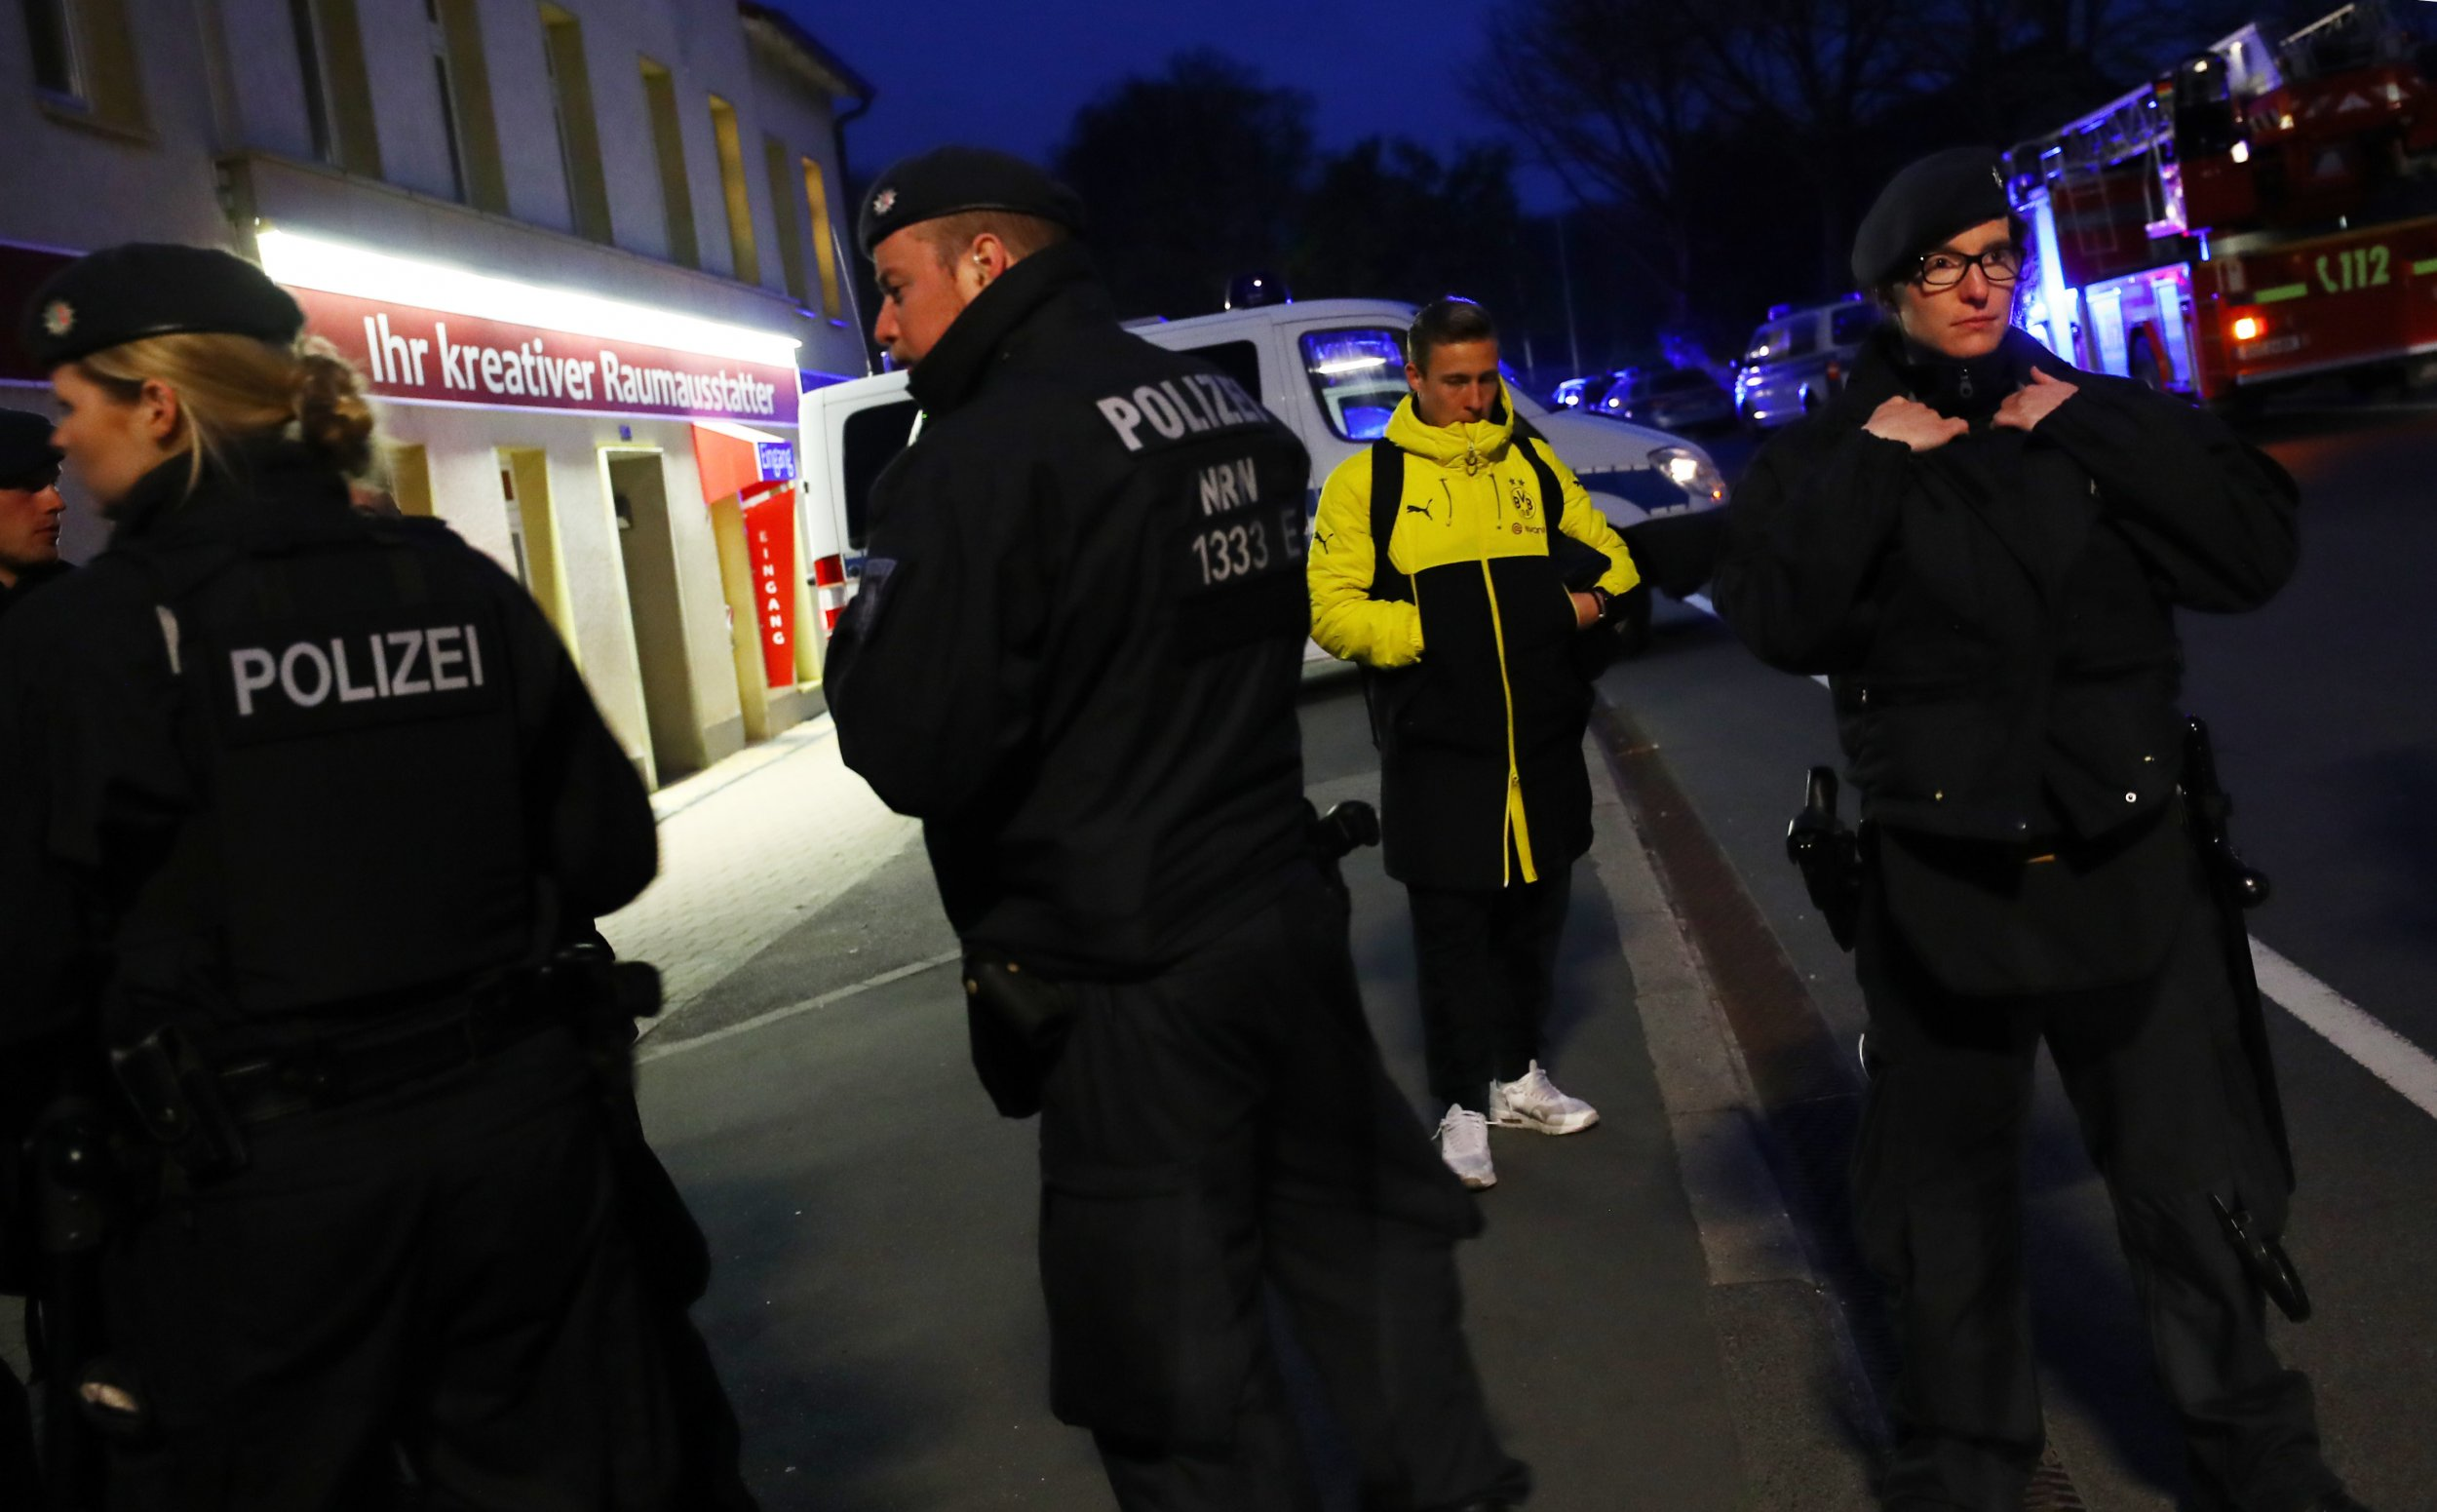 Borussia Dortmund's Felix Passlack with police after an explosion by the Borussia Dortmund team bus near their hotel in Dortmund, Germany, April 11.